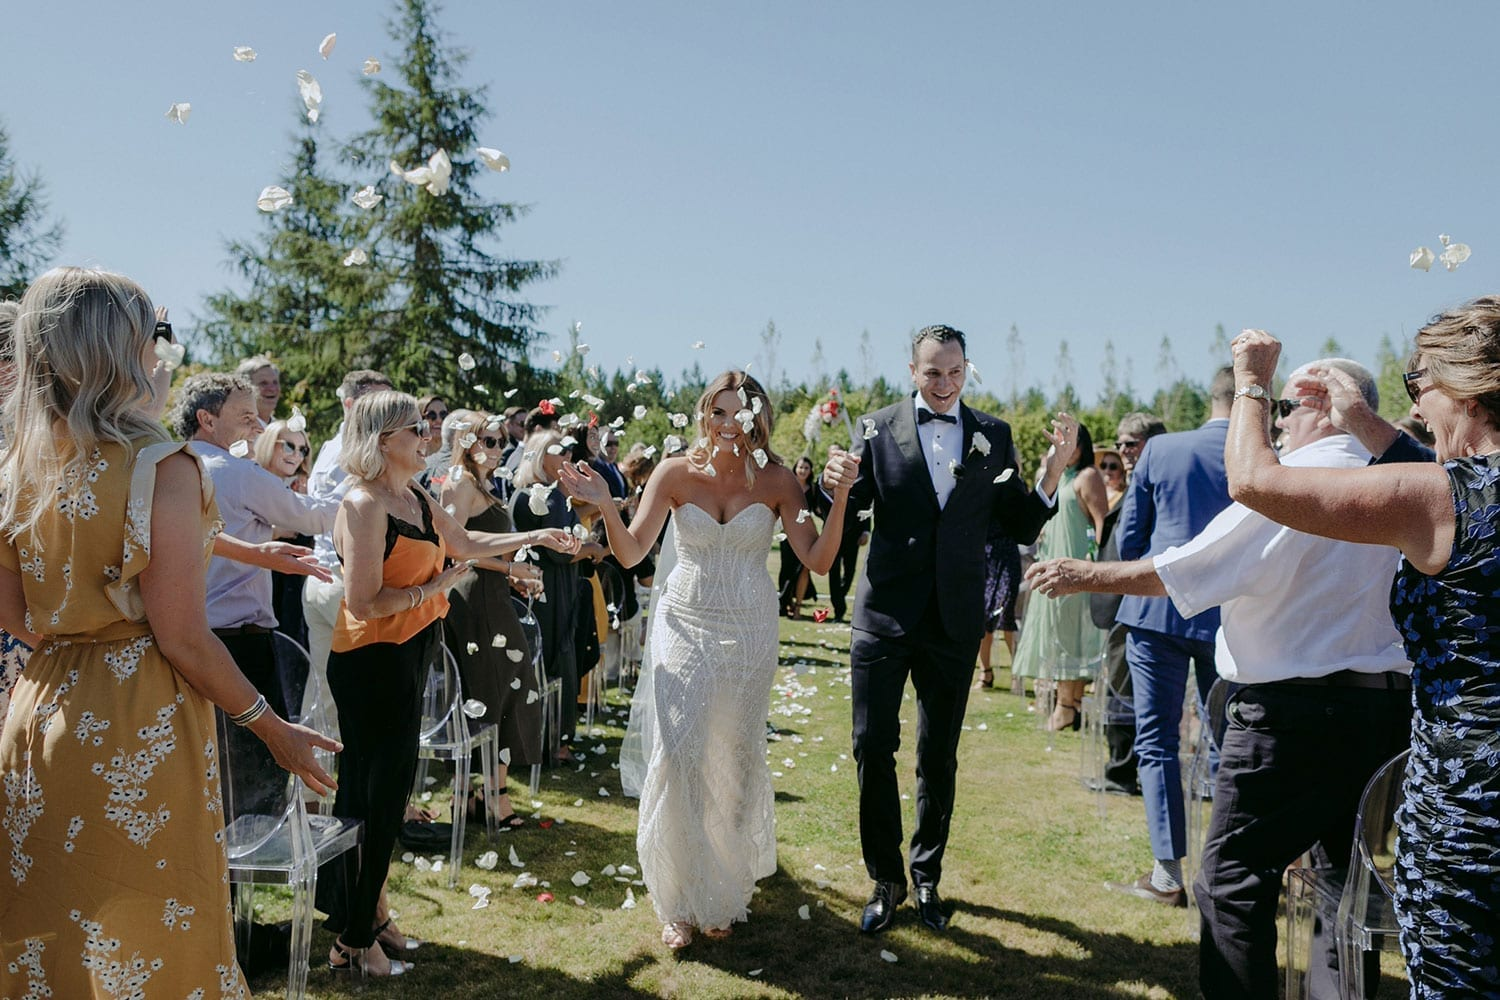 Vinka Design Features Real Weddings - bride in custom made gown, a combination of our Indi wedding dress with added beading appliqued and sewn by hand, over the top of a nude semi sheer base. With groom and confetti walking down aisle